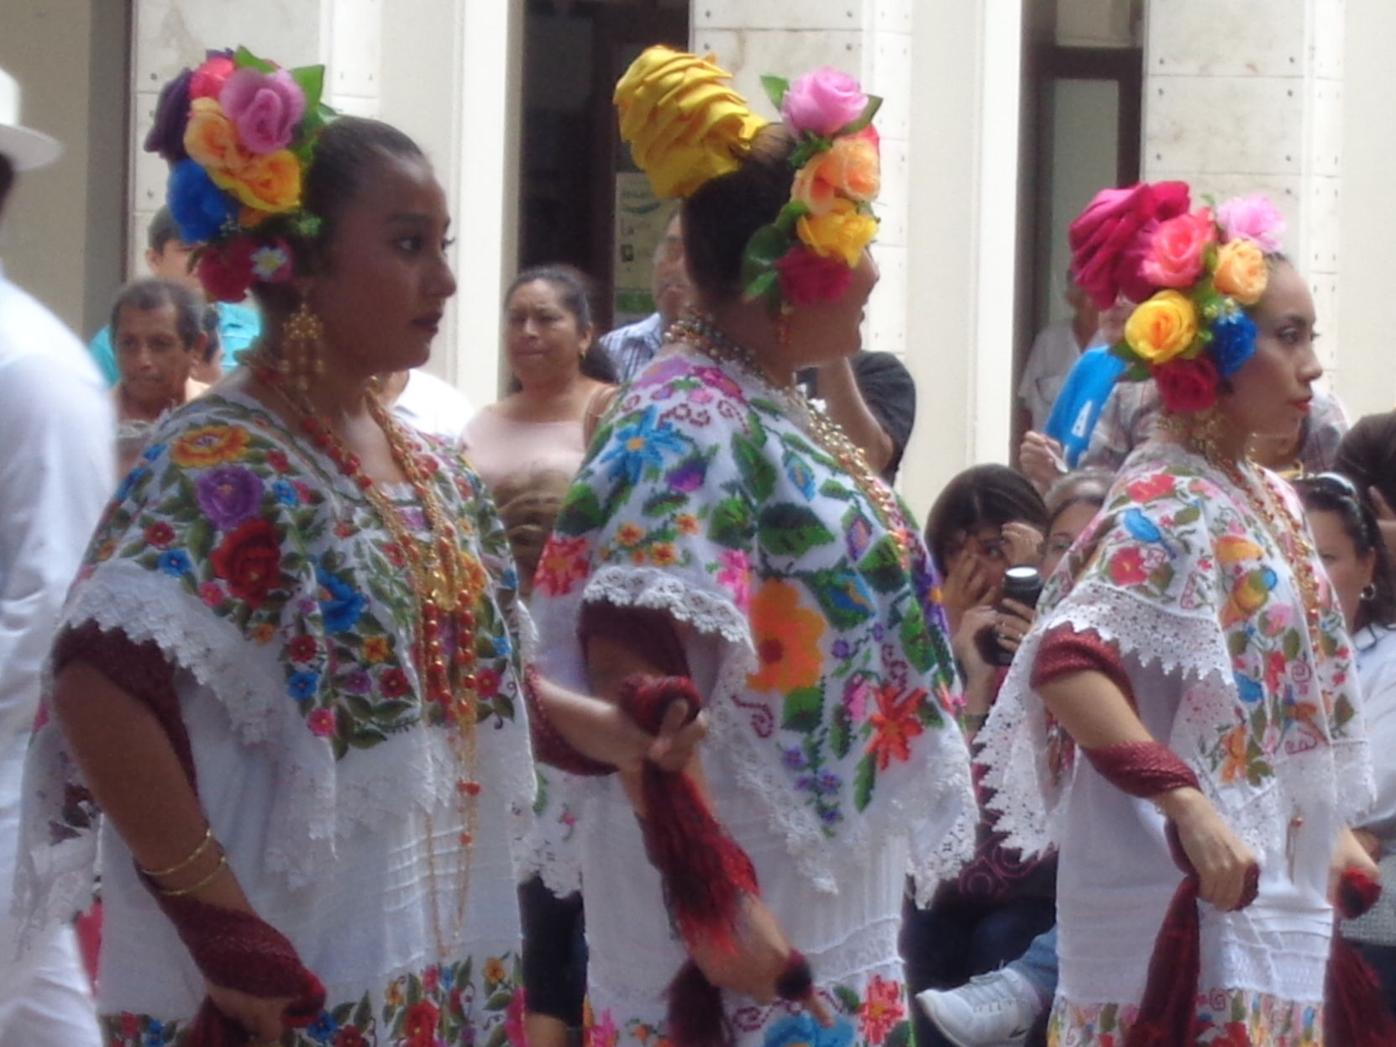 Dancers in Merida